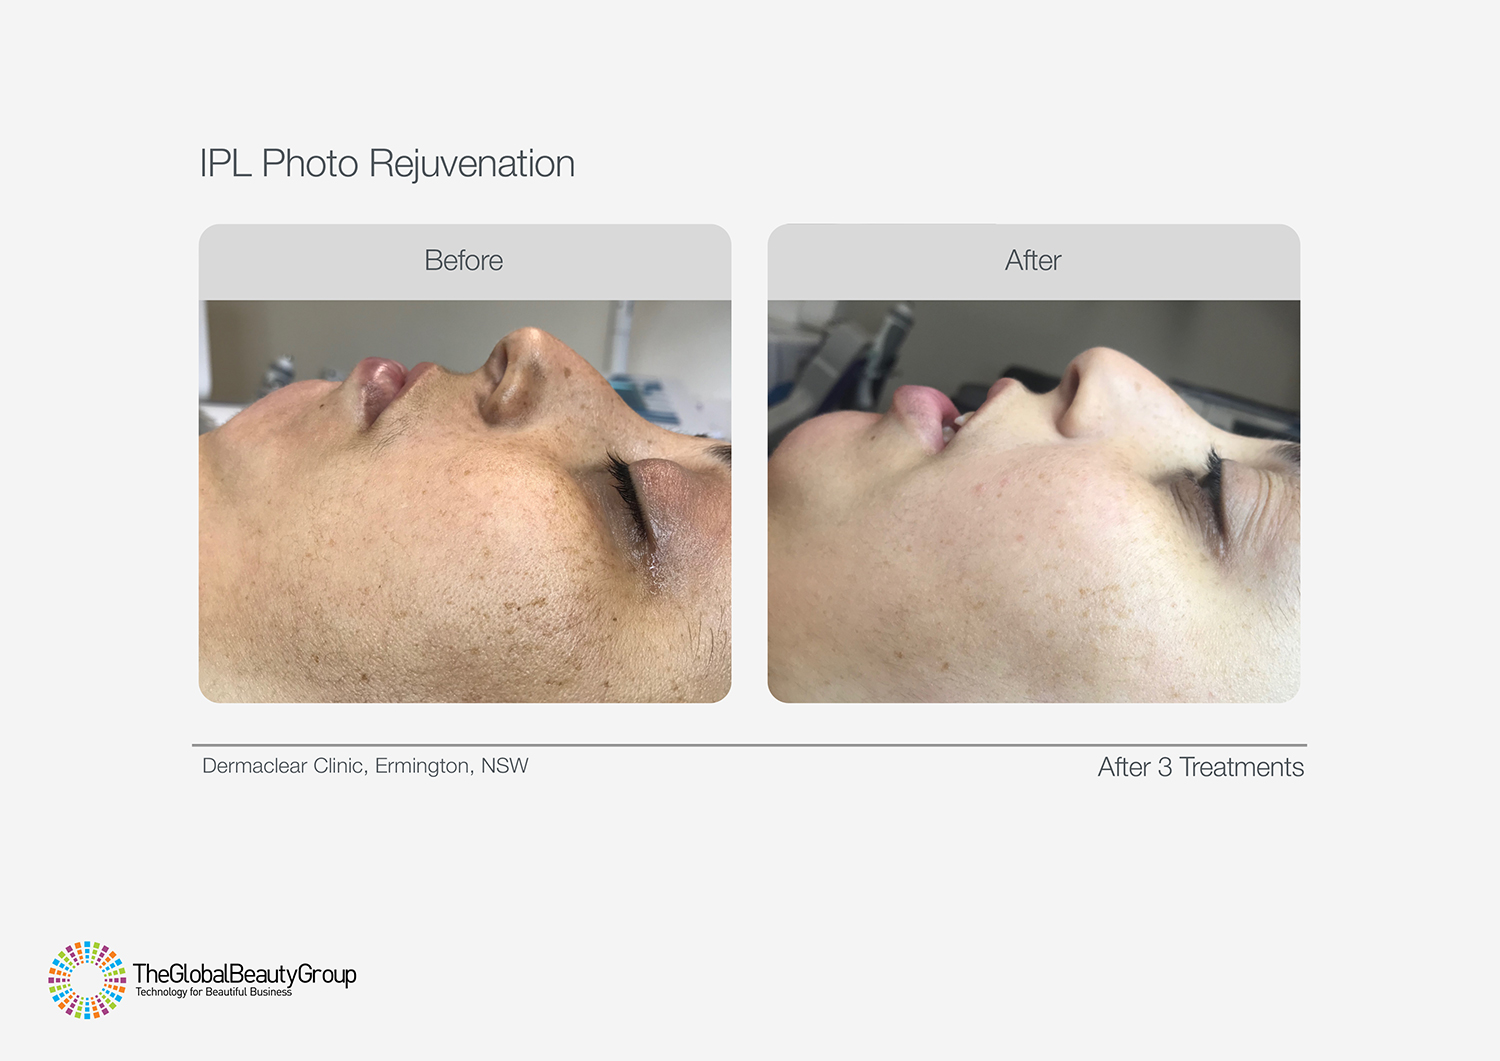 IPL BEFORE AND AFTER SHOWING PIGMENTATION REDUCTION